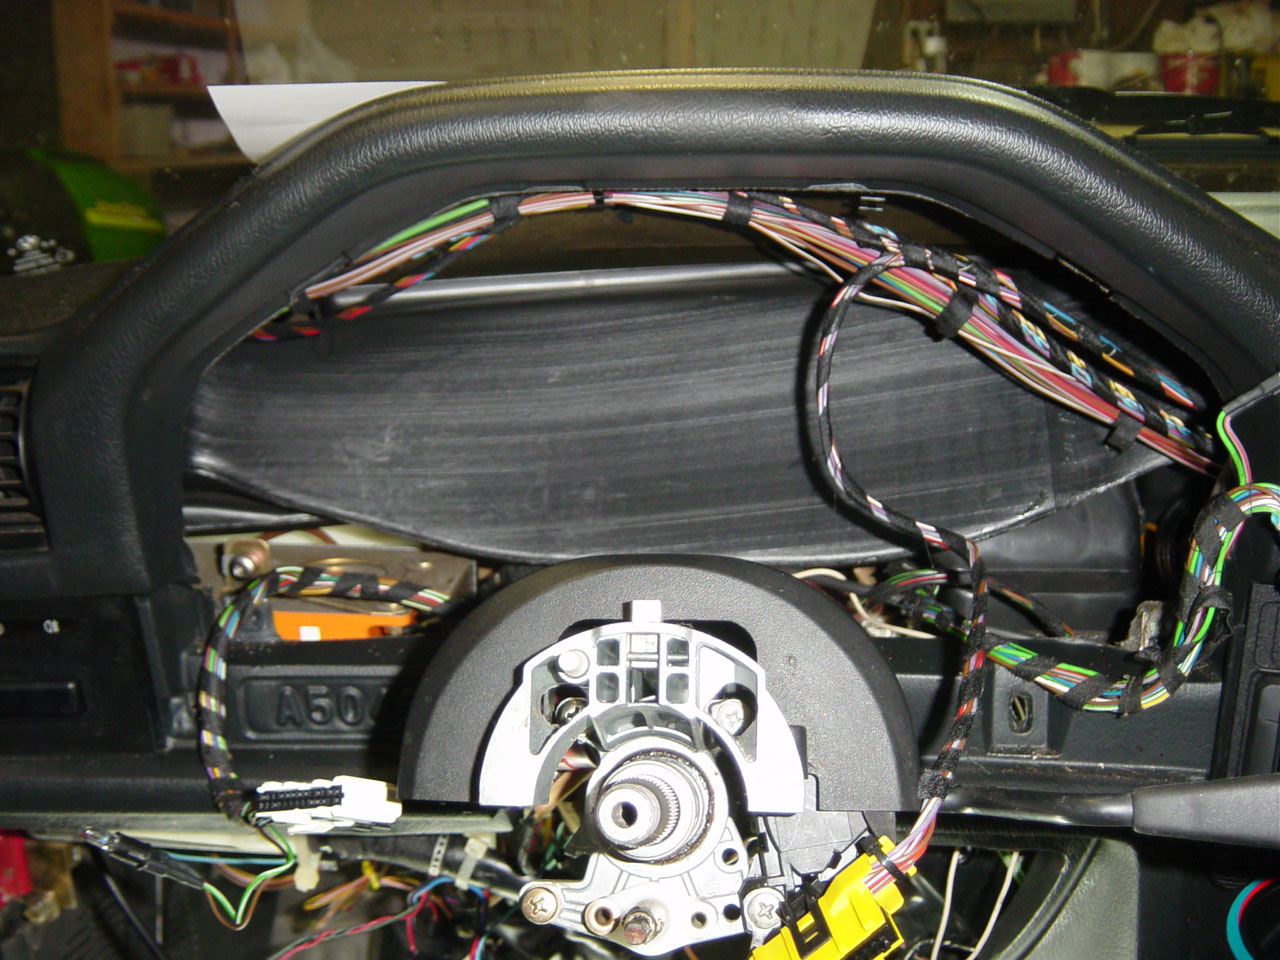 1991 Bmw 318i E30 M42 On Board Computer Obc Retrofit By Michael Wiring Harness 7 Pin This Is Your Mini You Can Trace It Both Ways To Go The And Door Chime